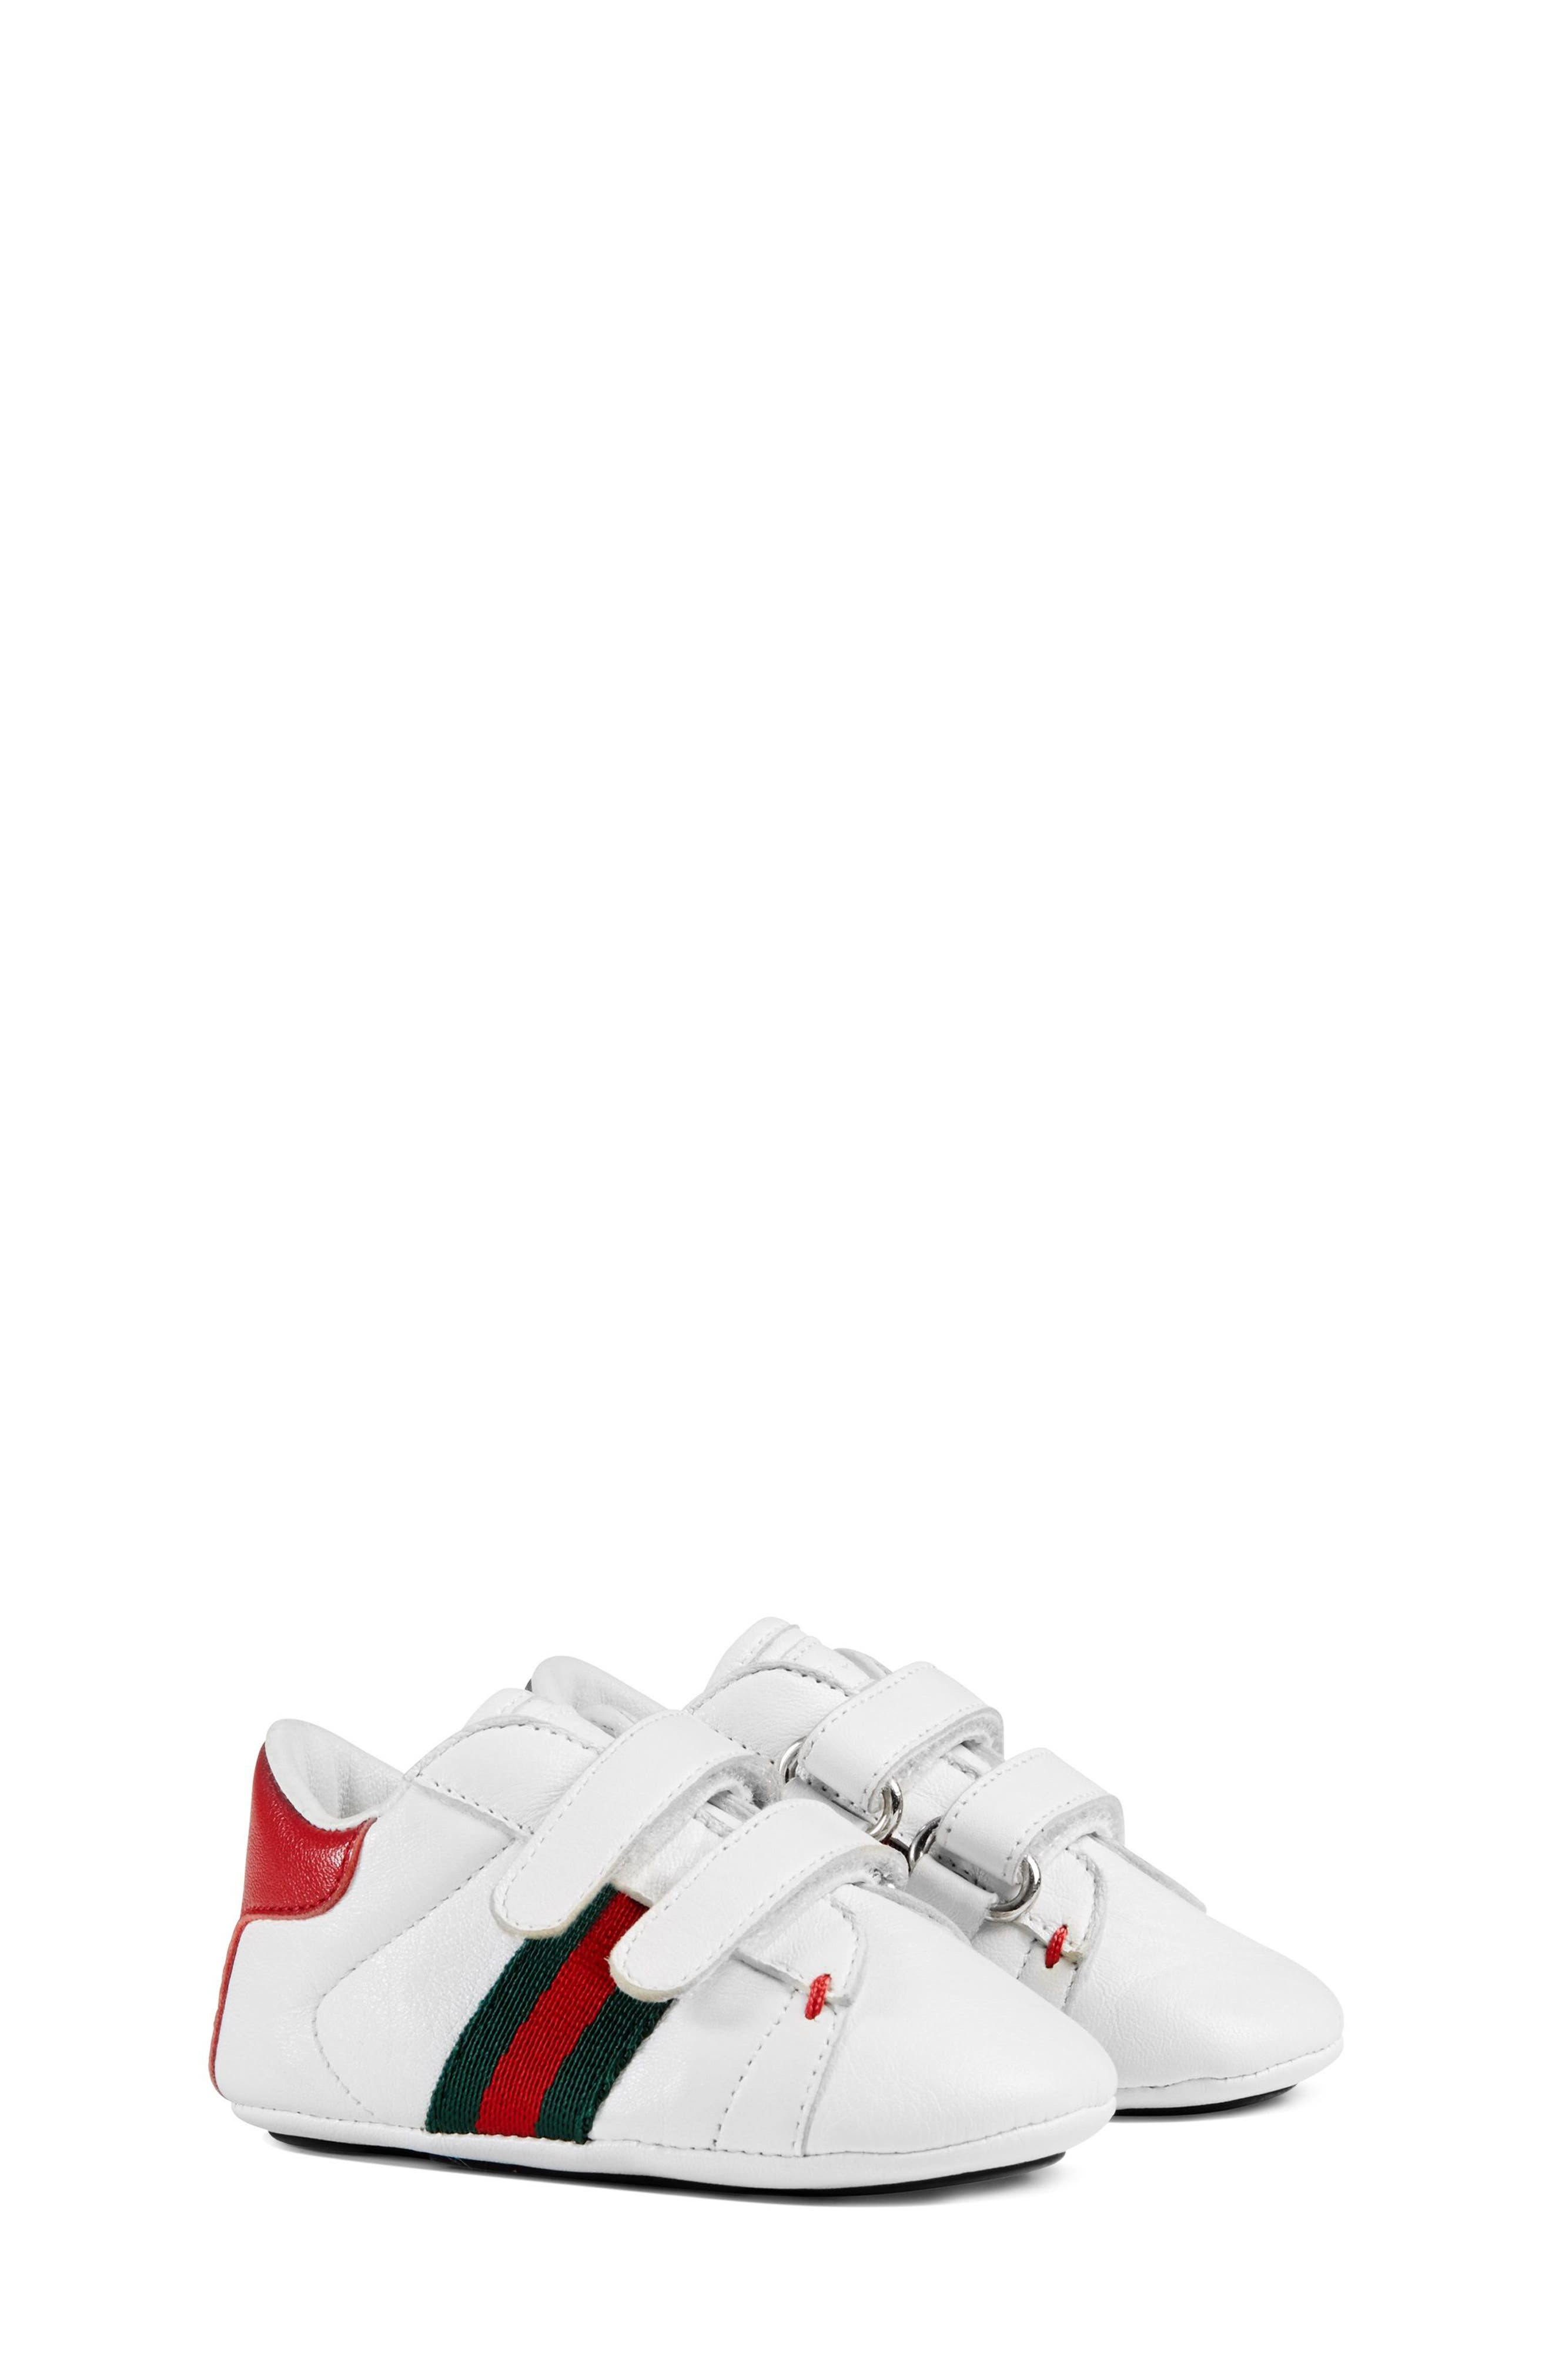 Gucci 'Ace' Crib Shoe (Baby) | Nordstrom